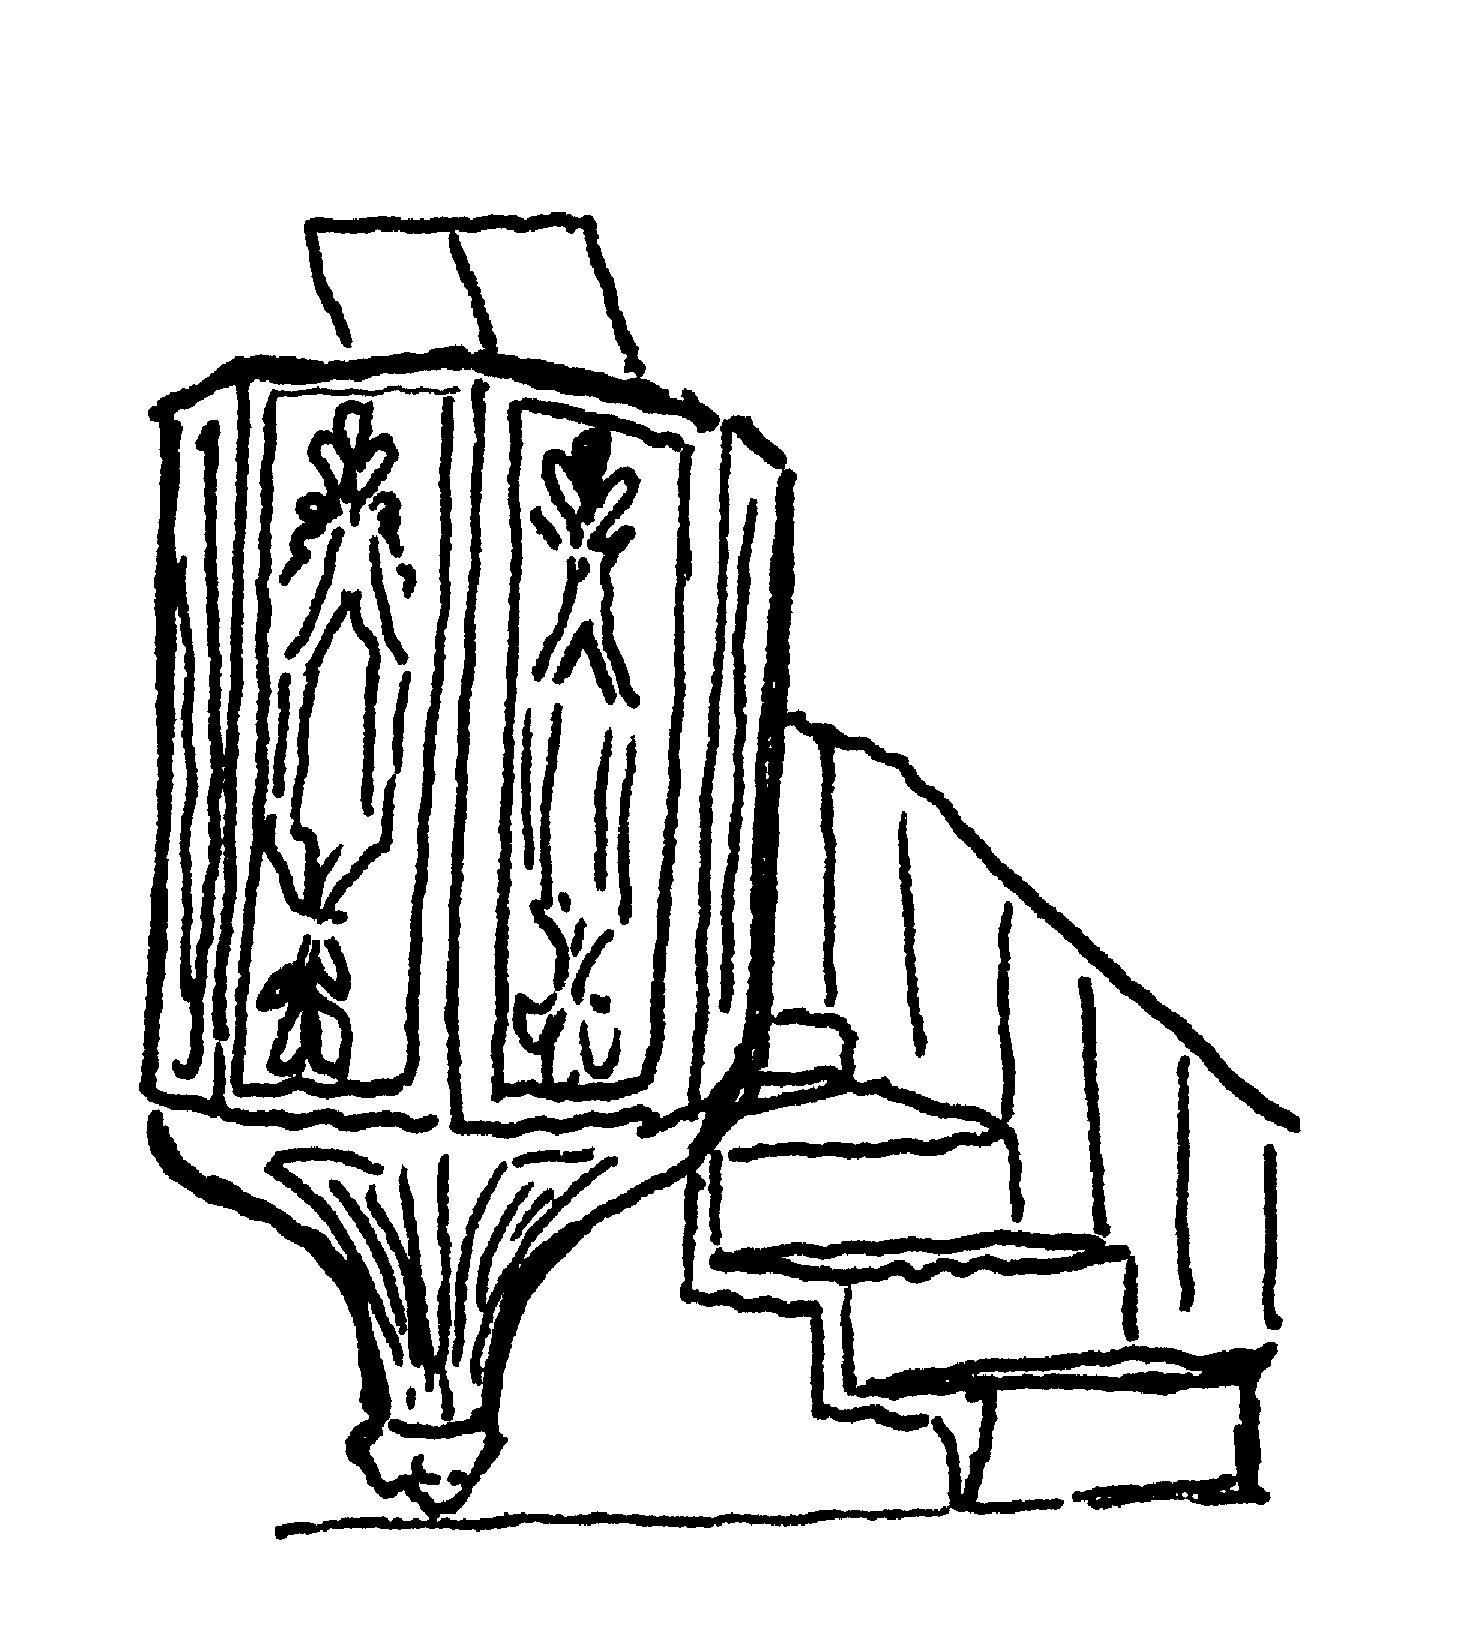 Pulpit clipart #10, Download drawings